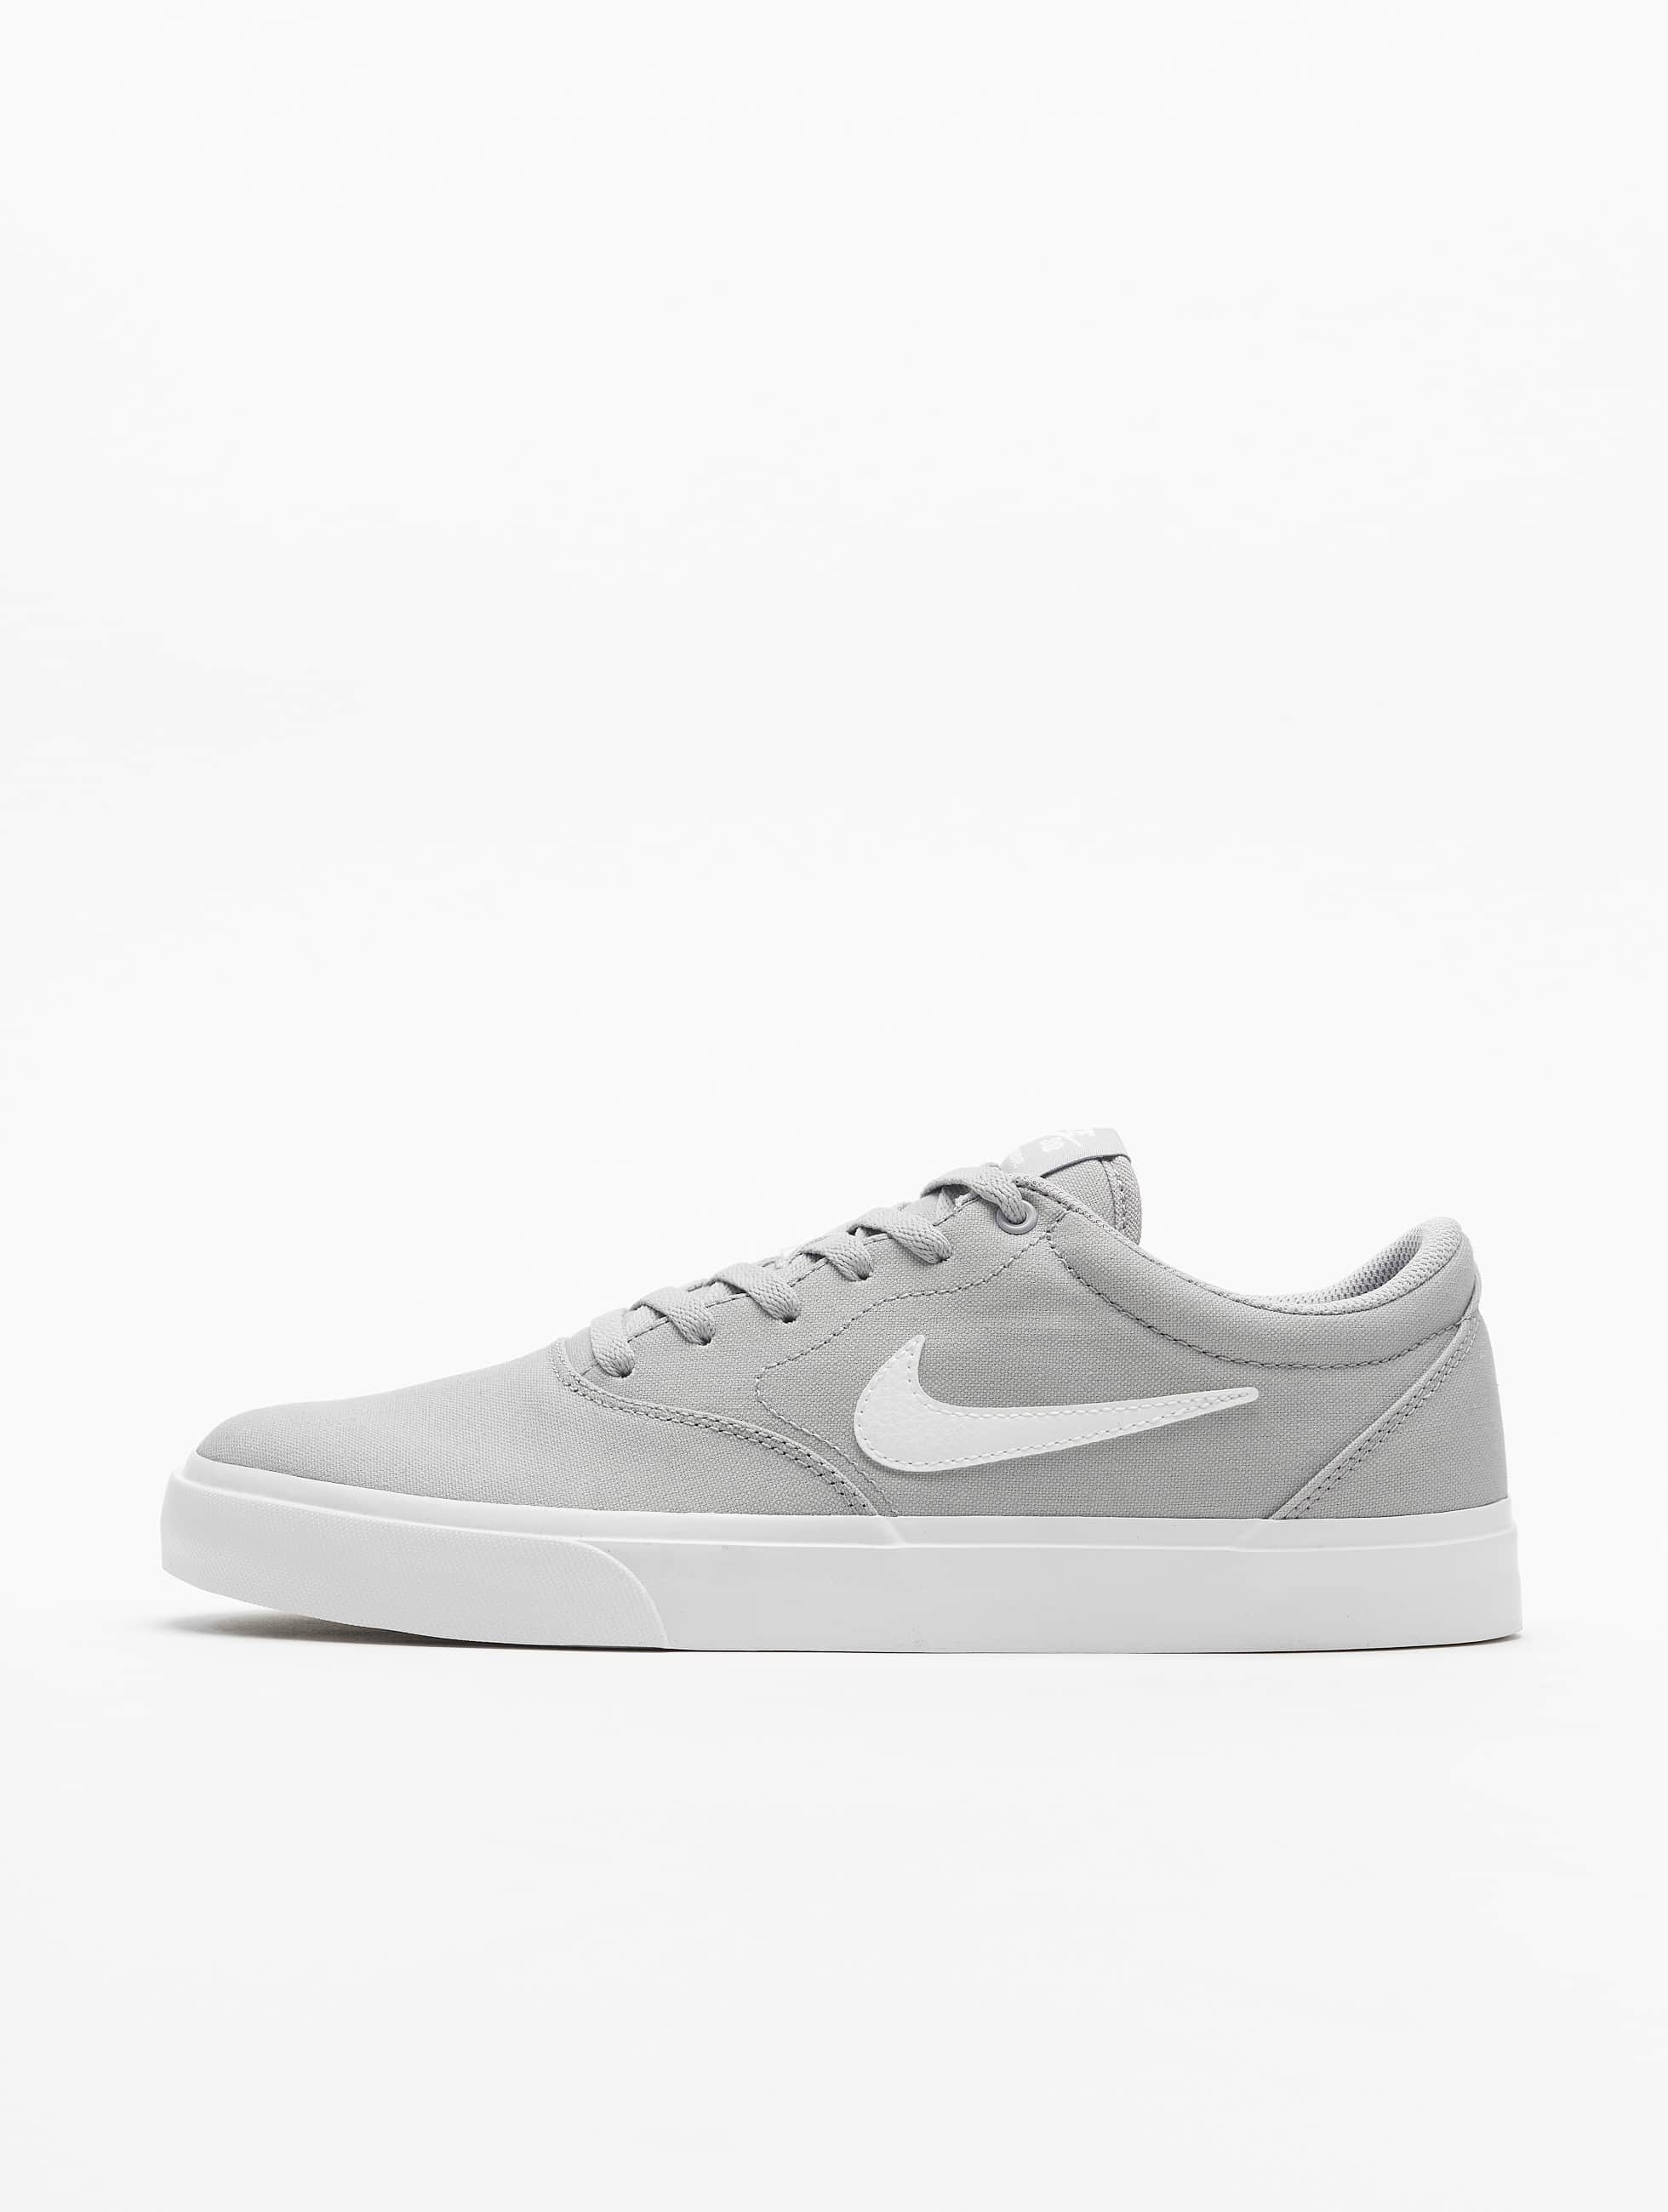 Nike SB Charge Canvas Sneakers Wolf GreyWhite